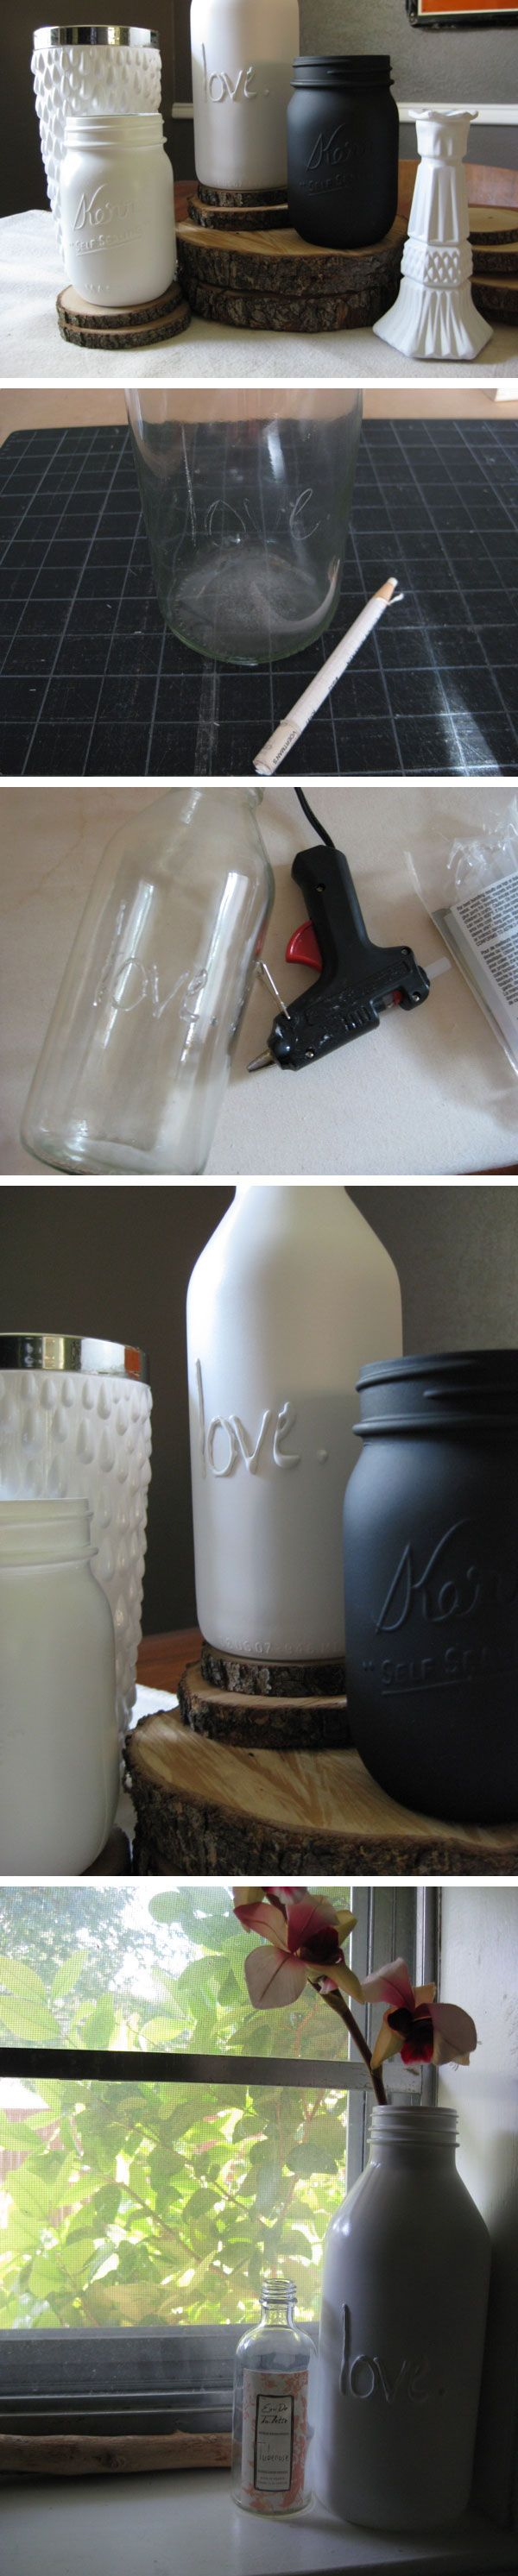 Beautiful jars, customized with glue from a glue gun and then painted